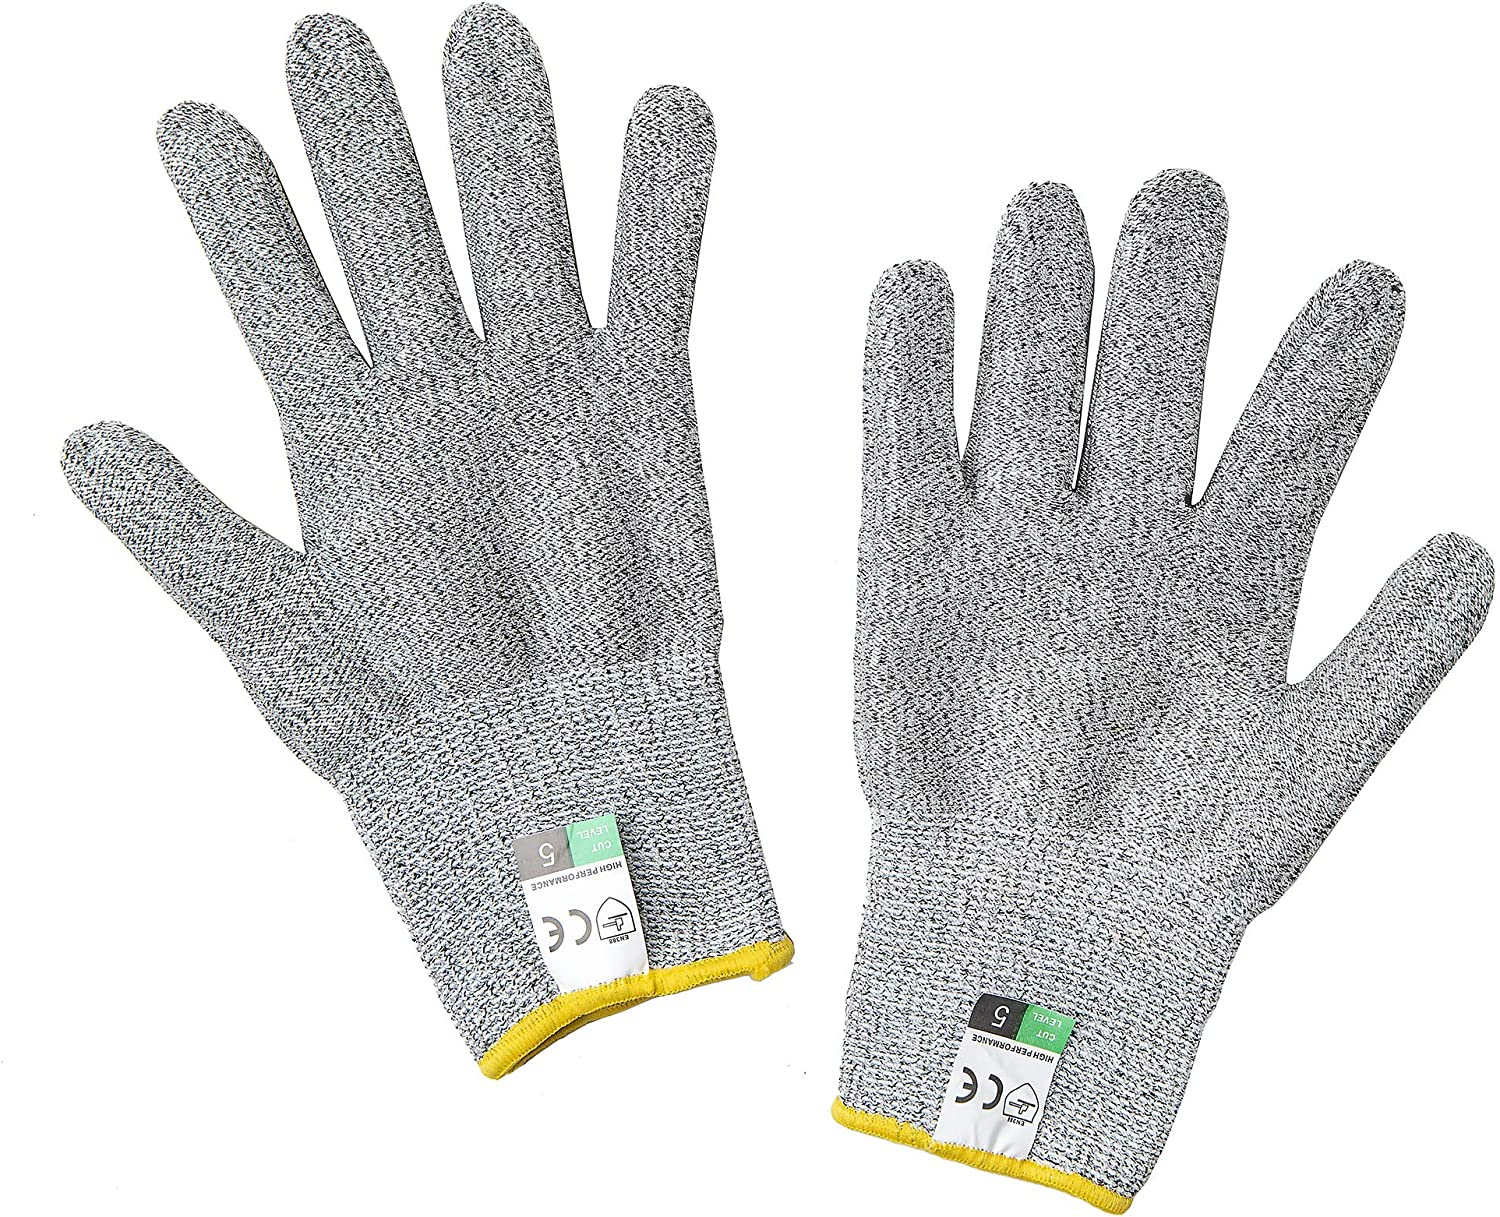 SYRATION Cut Resistant Glove - High Performance Level 5 Protection for Kitchen Cutting, Food Grade Safety Gloves for Cutting (Medium, 1 Pair Professional Glove)